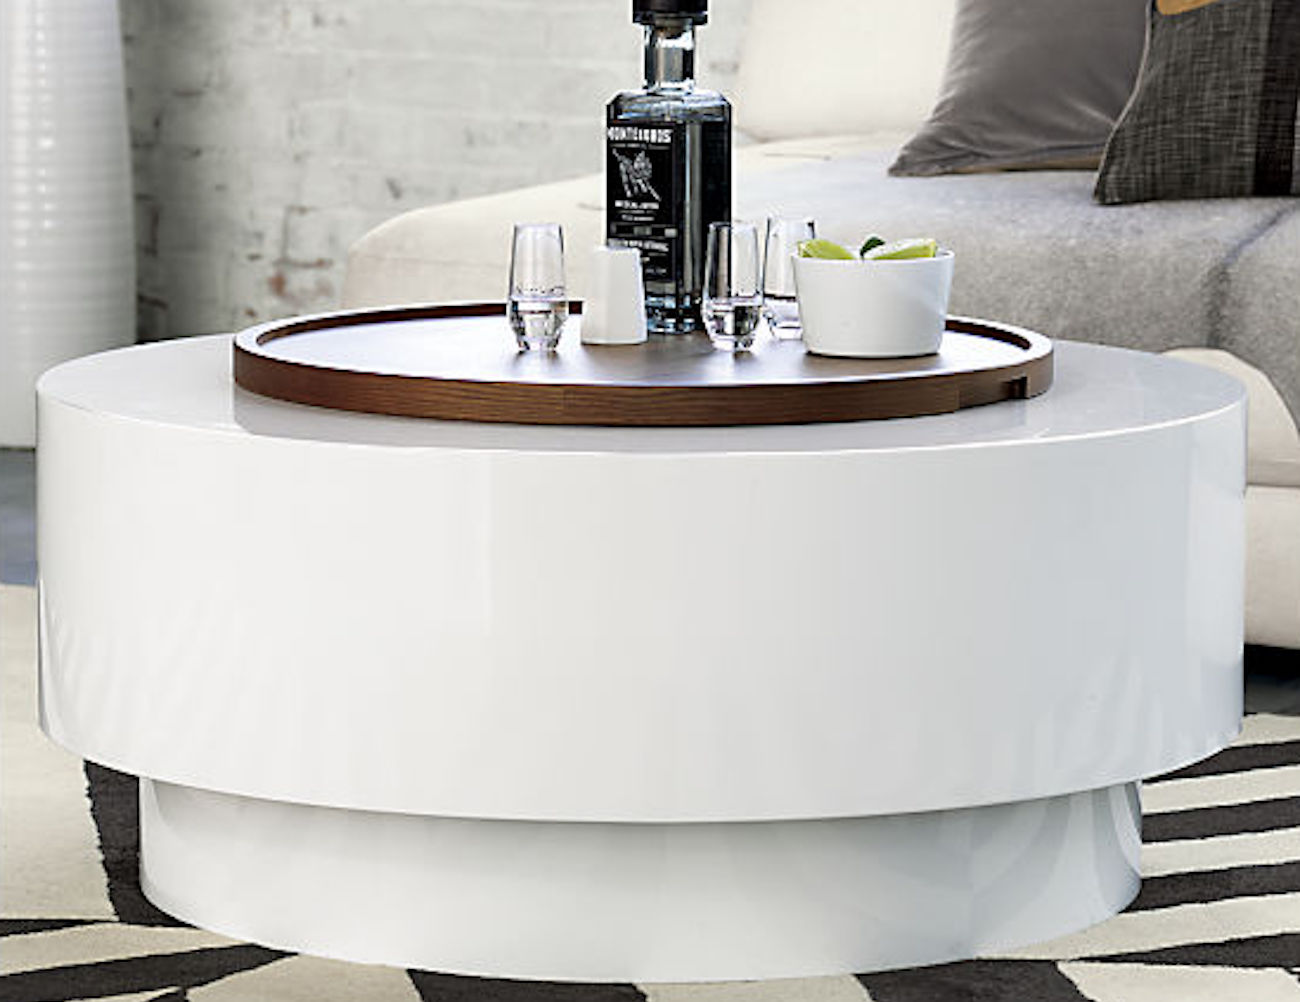 CB2 x Lenny Kravitz Ya Ya Coffee Table